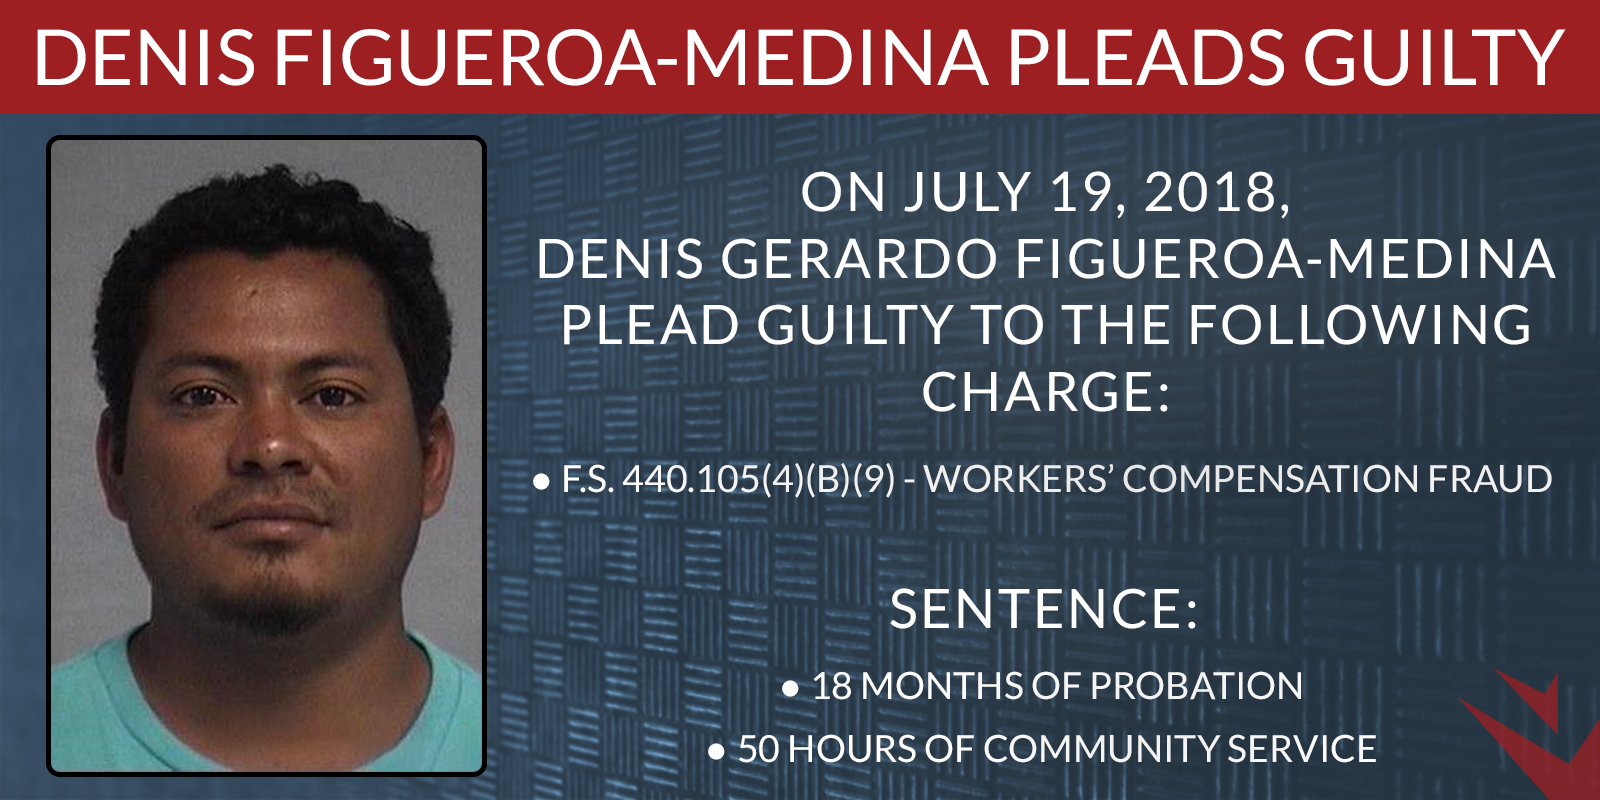 Denis Gerardo Figueroa-Medina pleads guilty to workers' compensation fraud